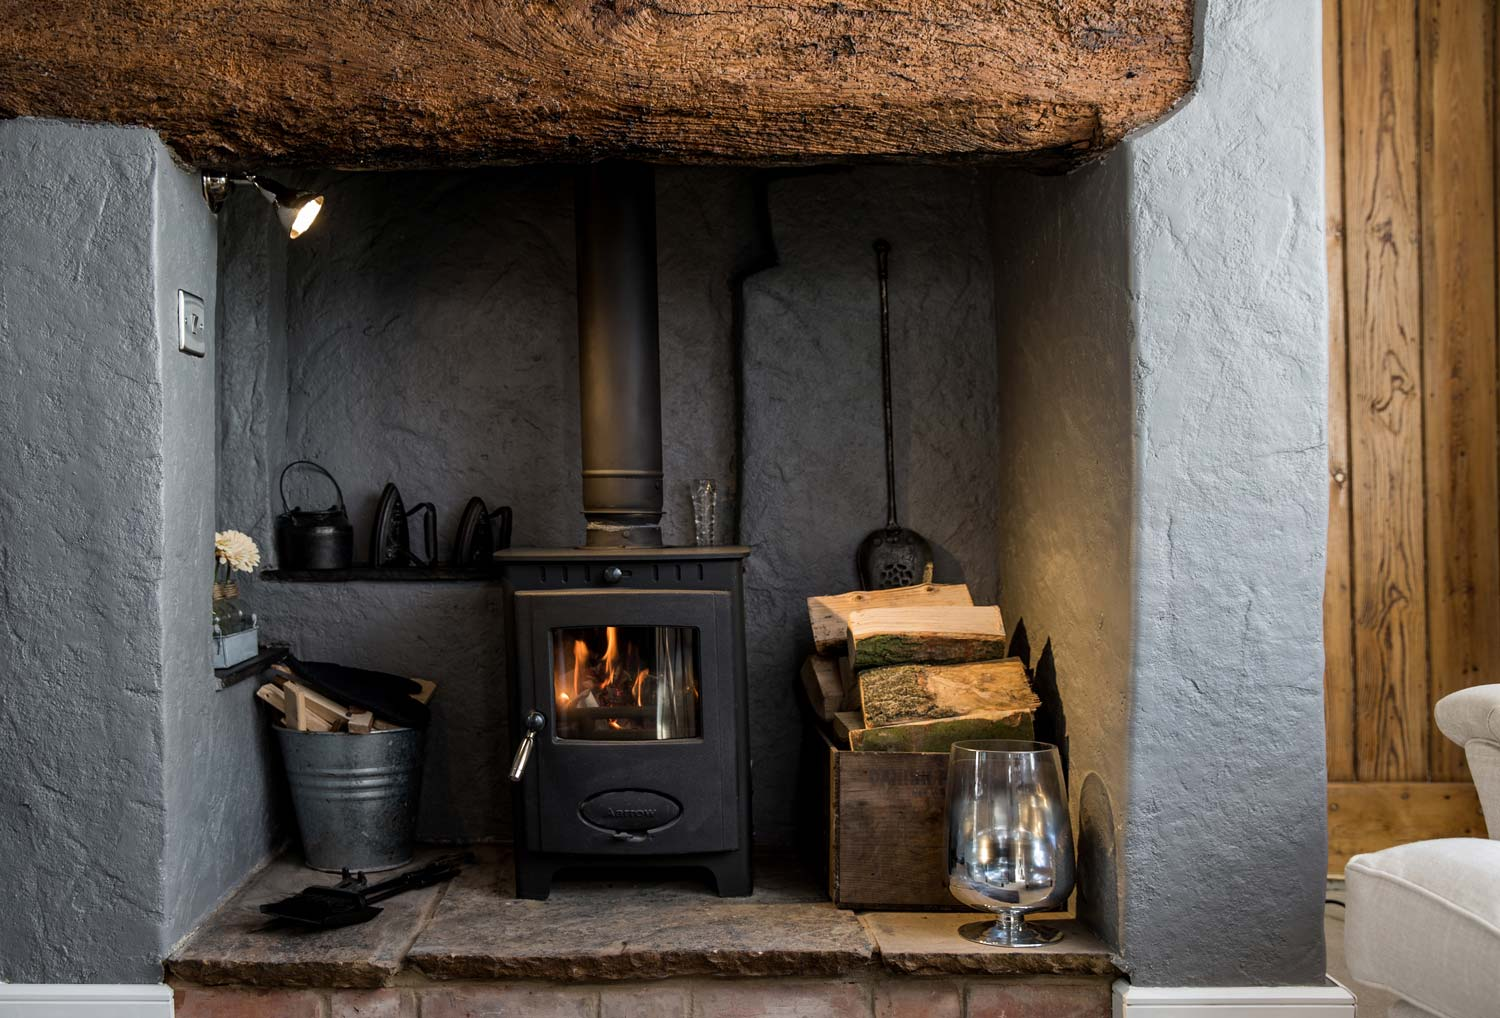 Cosy Log Burner - The historic inglenook fireplace gives its name to this stylish retreat